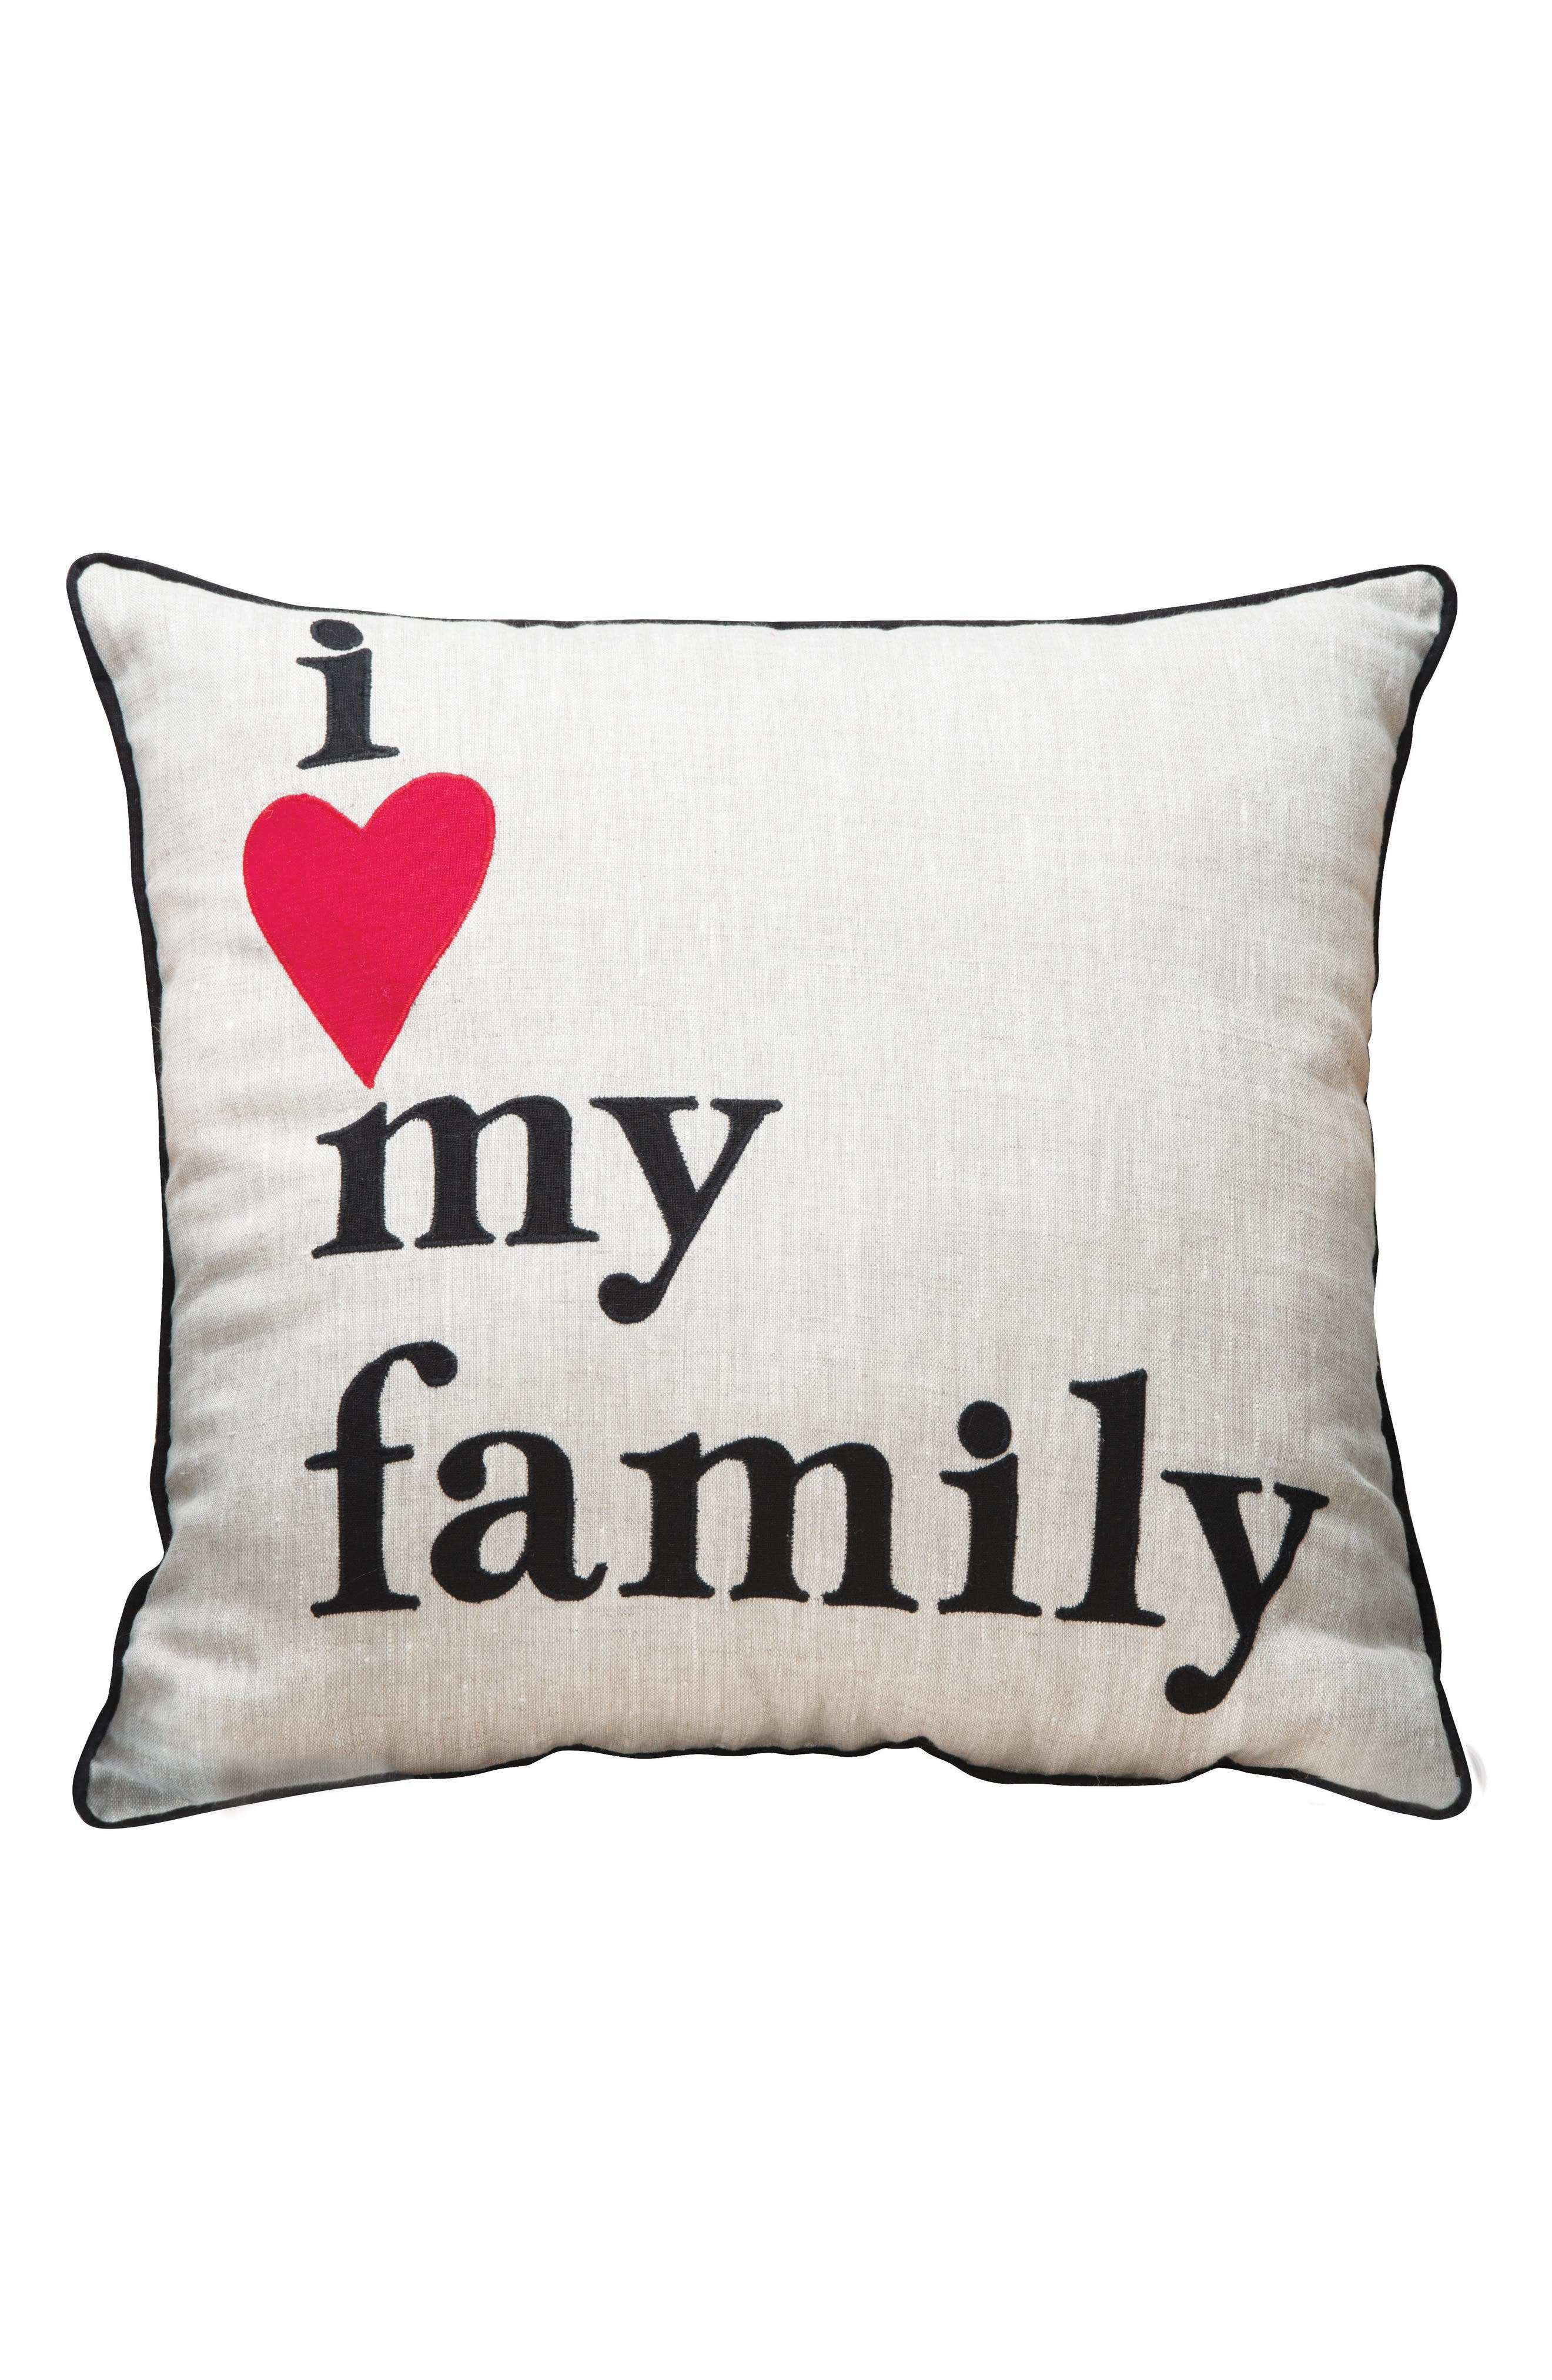 I Love My Family Accent Pillow,                         Main,                         color, Cream/ Black/ Red